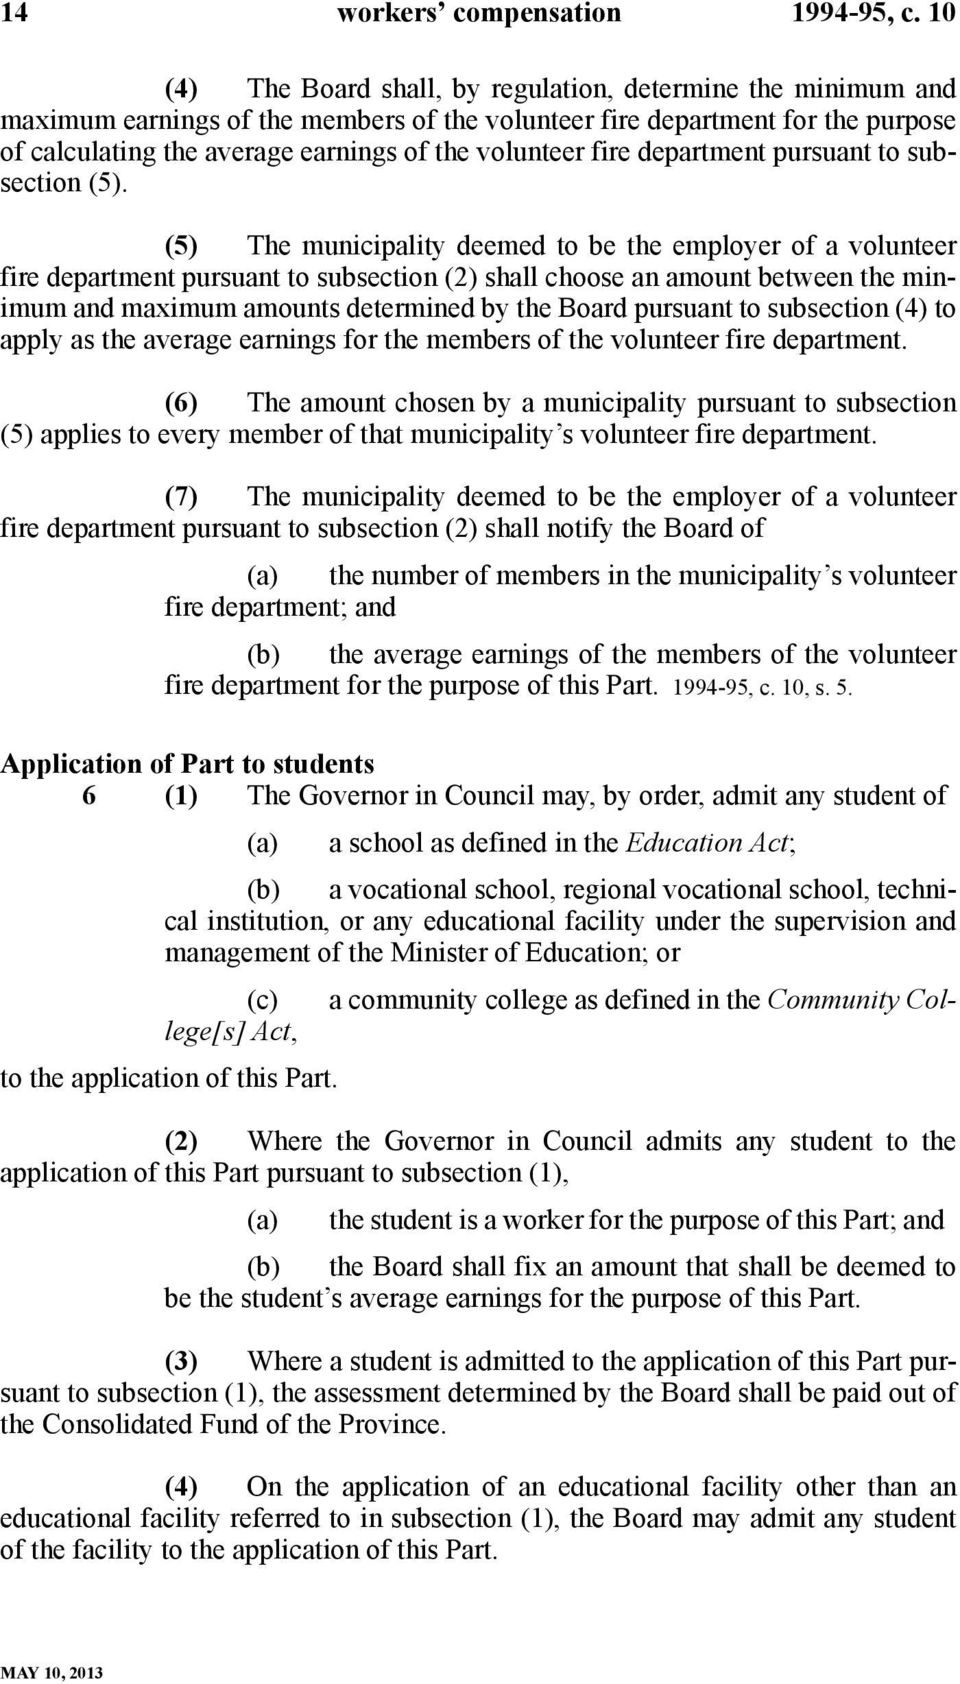 fire department pursuant to subsection (5).